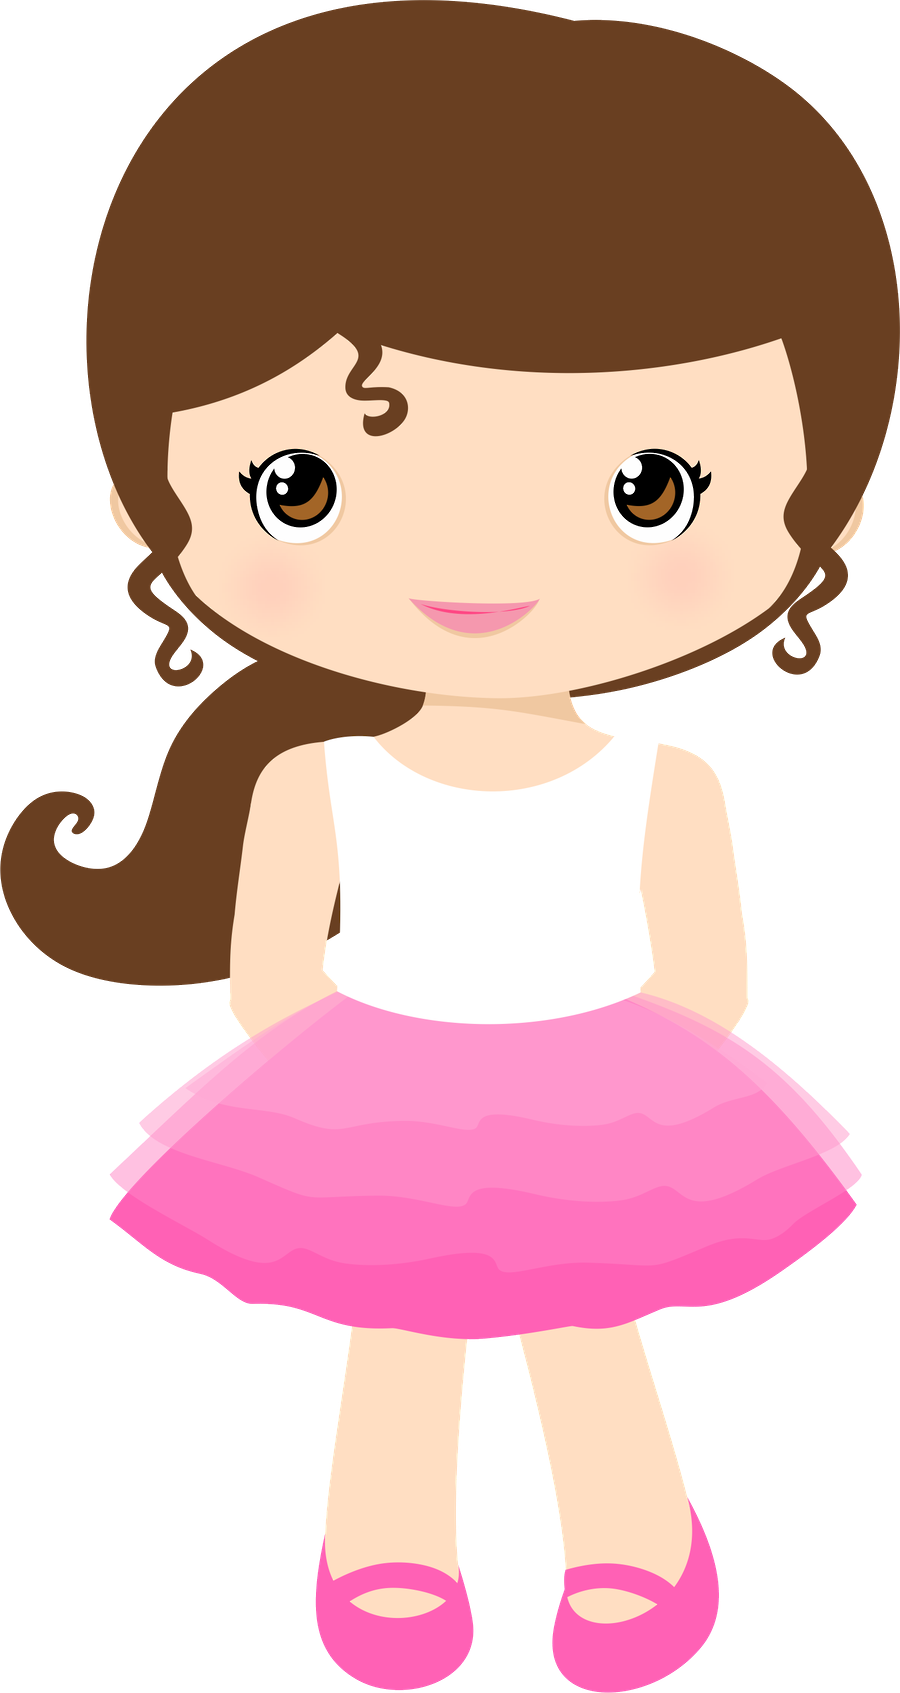 Clipart girl at school clipart library download Mickey e Minnie - Minus | фетр | Pinterest | Clip art, Scrapbooking ... clipart library download